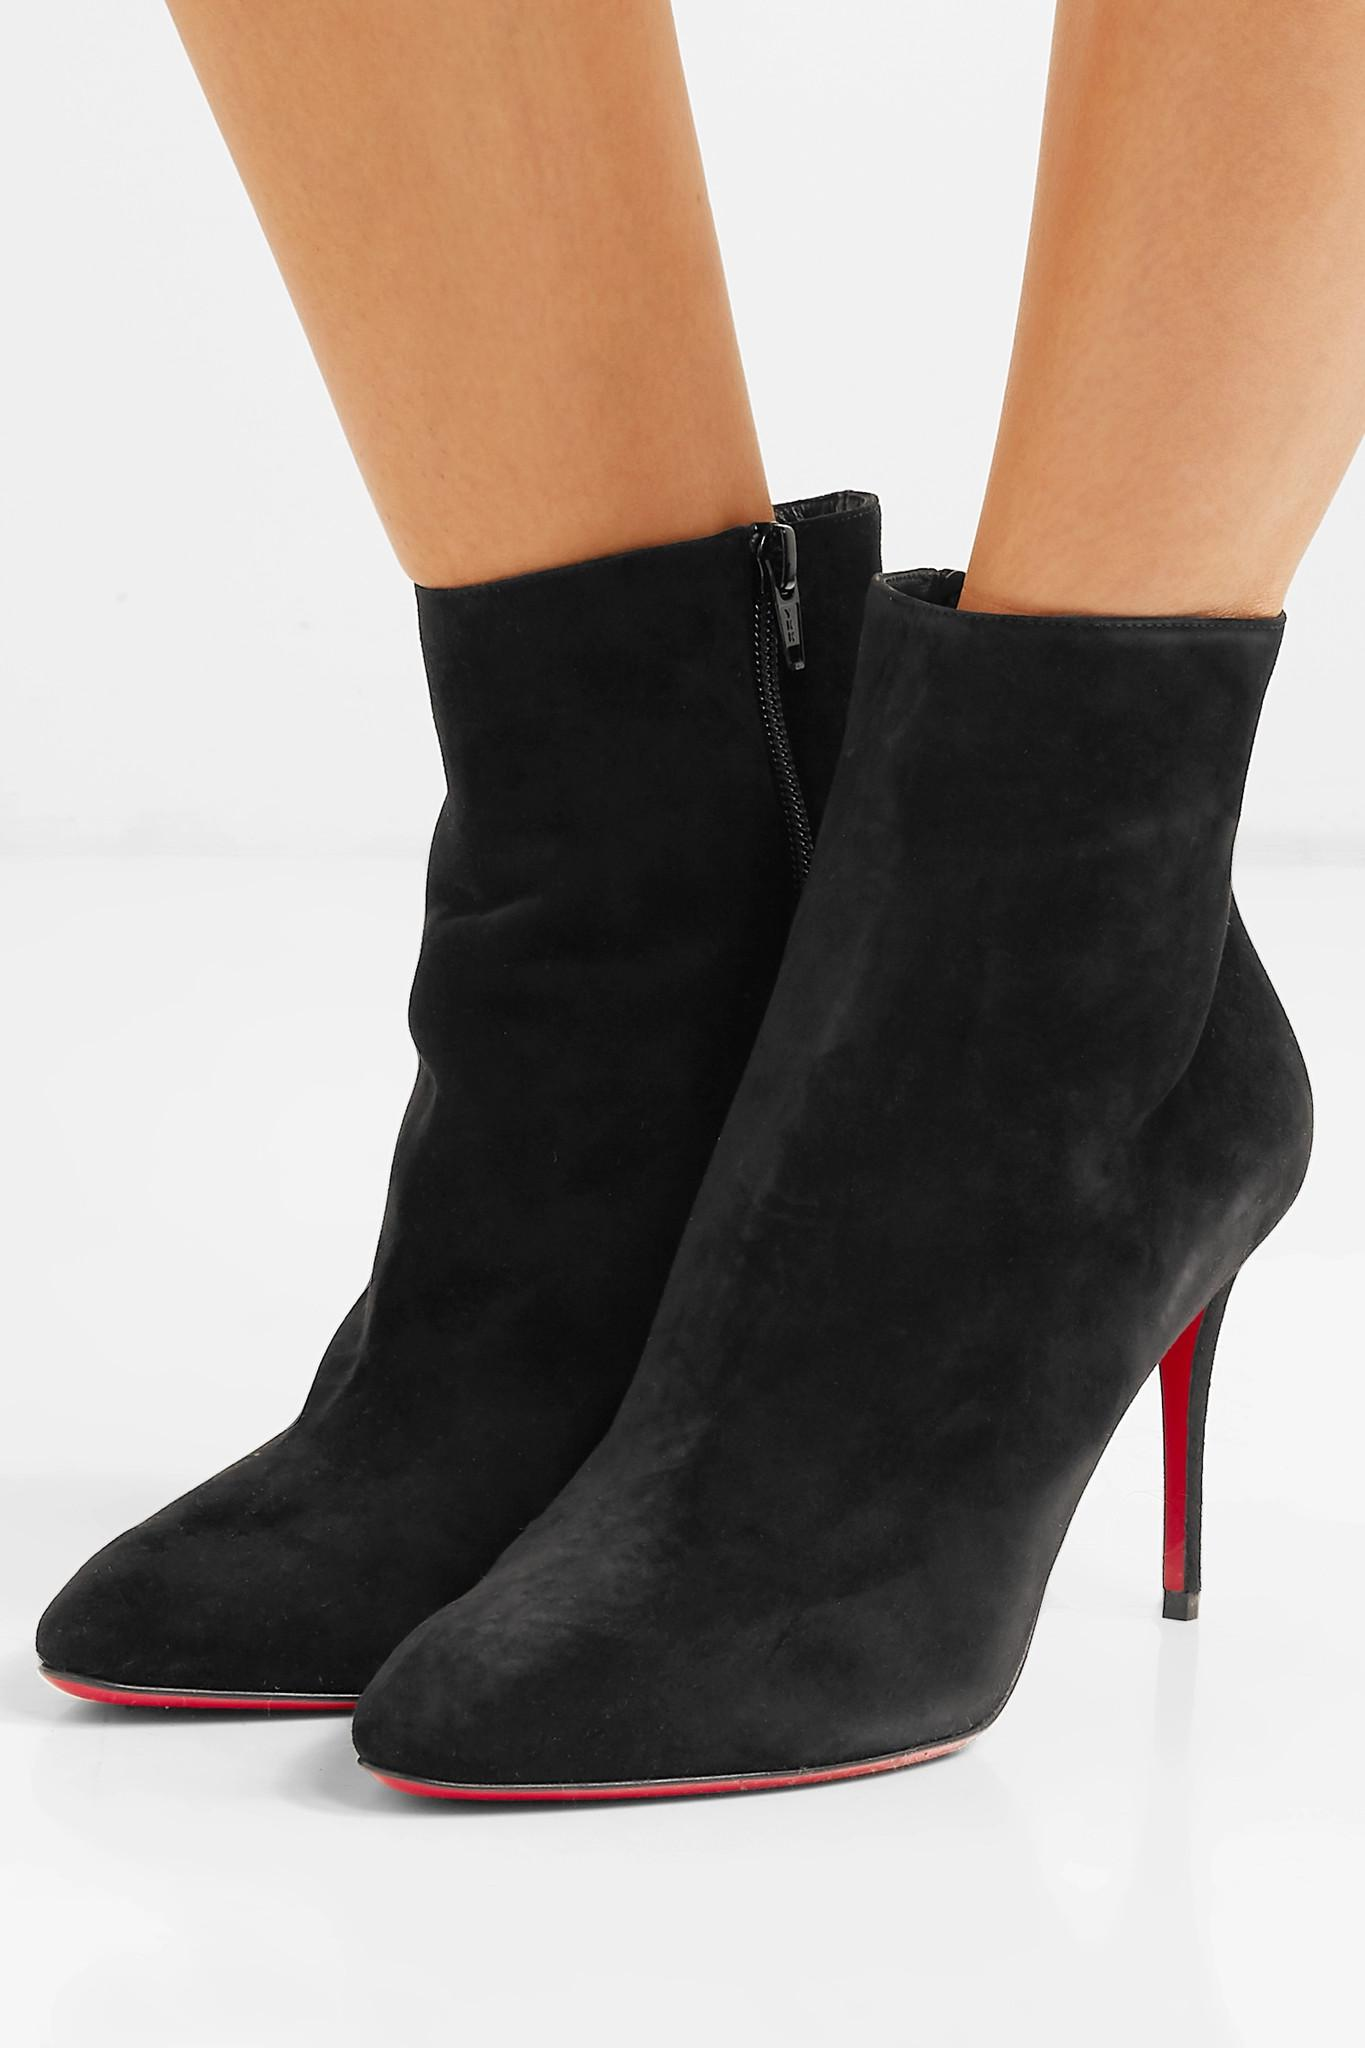 4c9ca13afc55 Christian Louboutin - Black Eloise 85 Suede Ankle Boots - Lyst. View  fullscreen